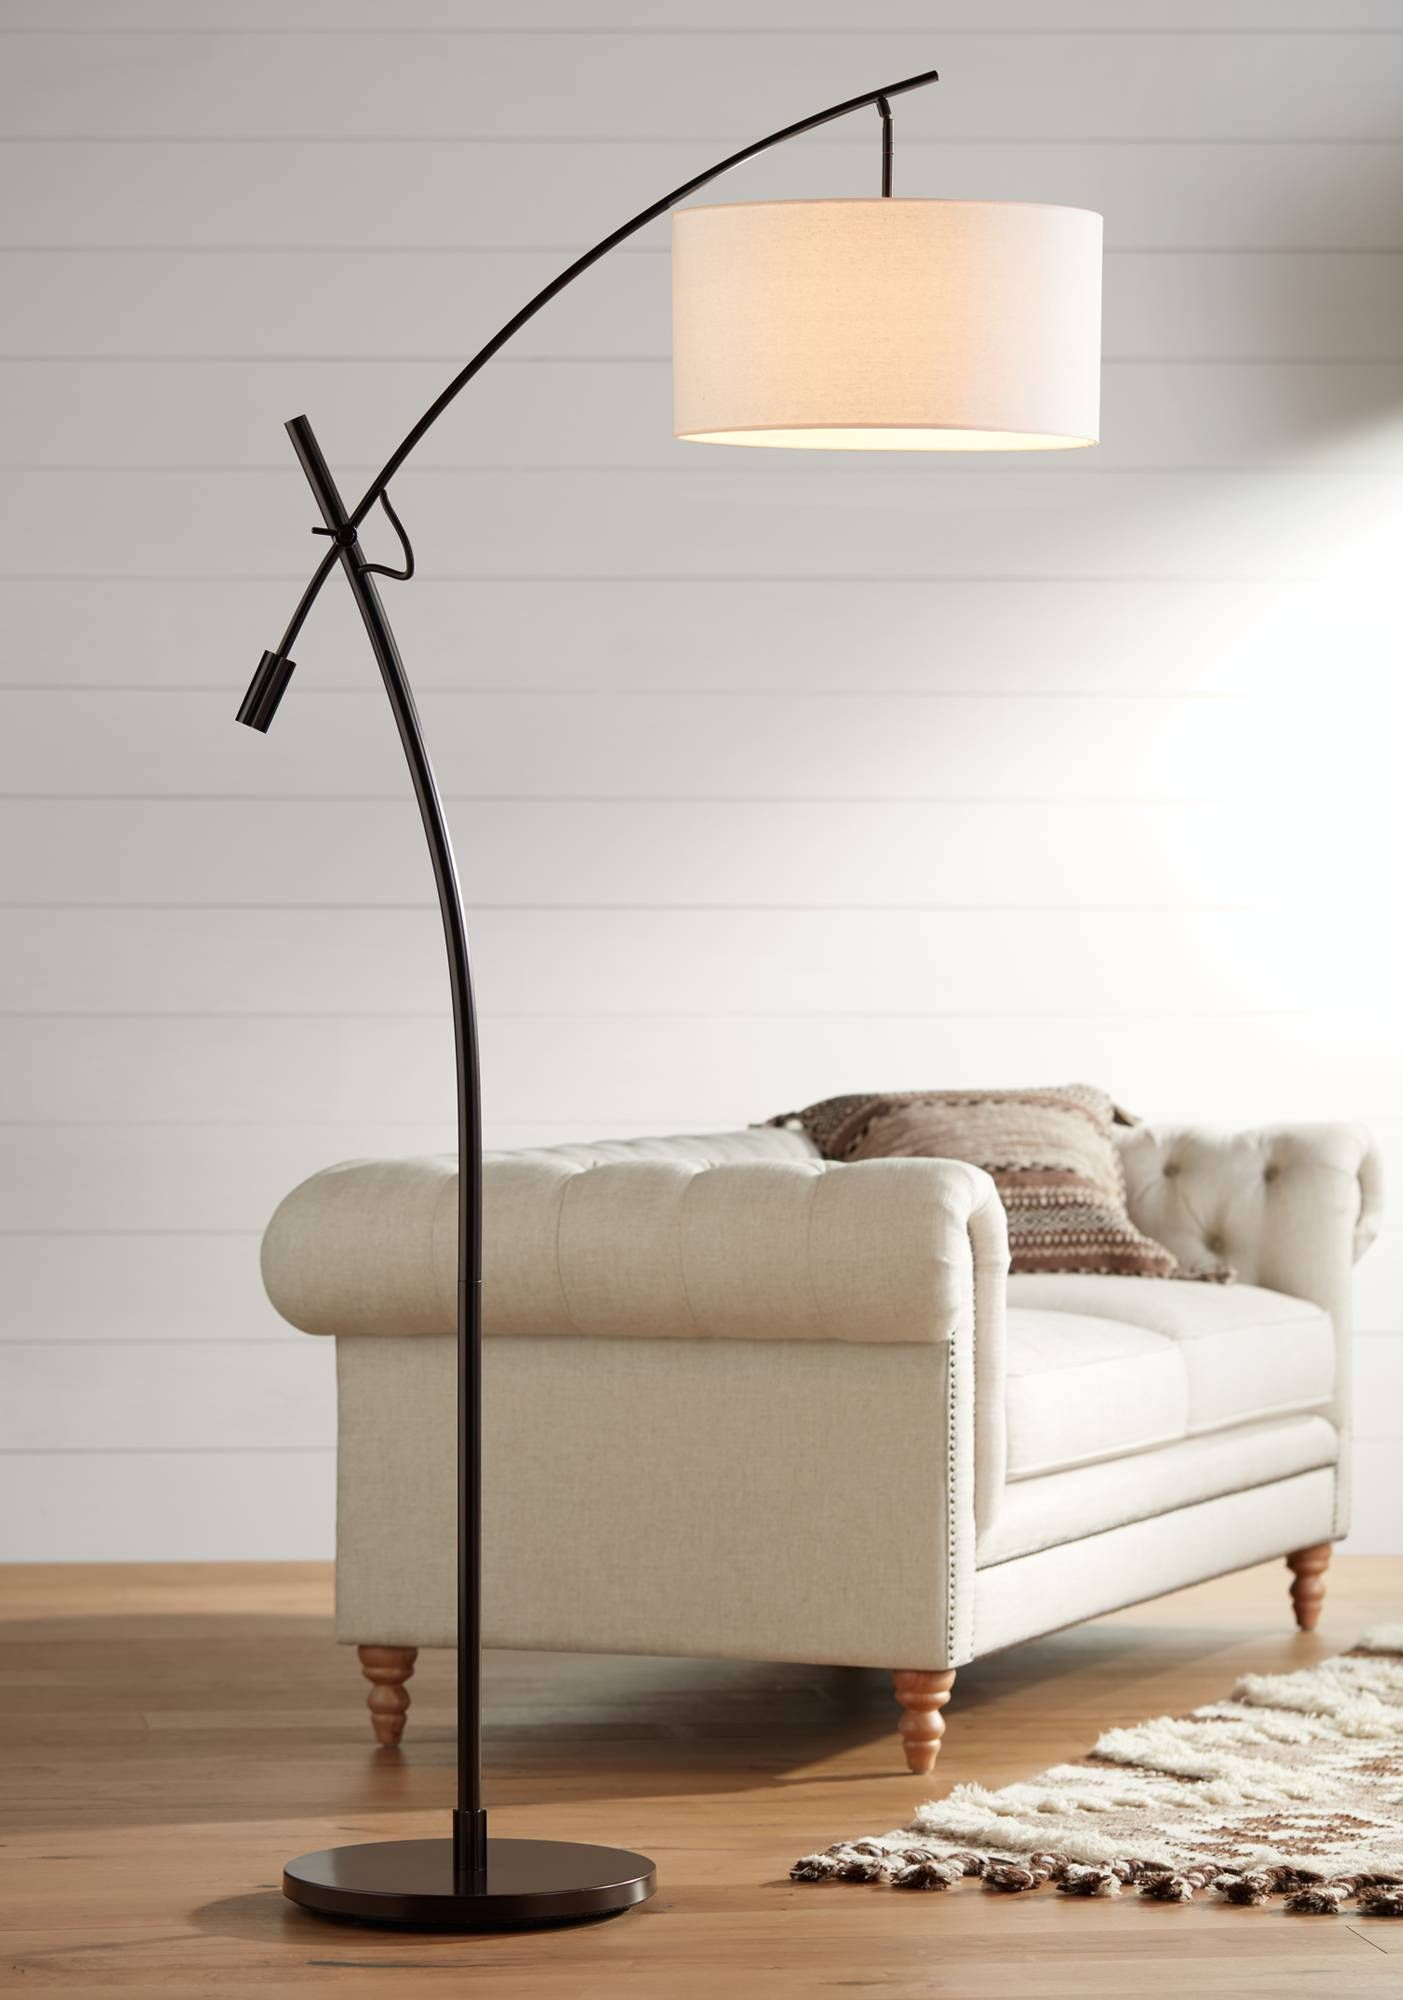 lamp arc products arch floor of natural shades rustic wood light modern